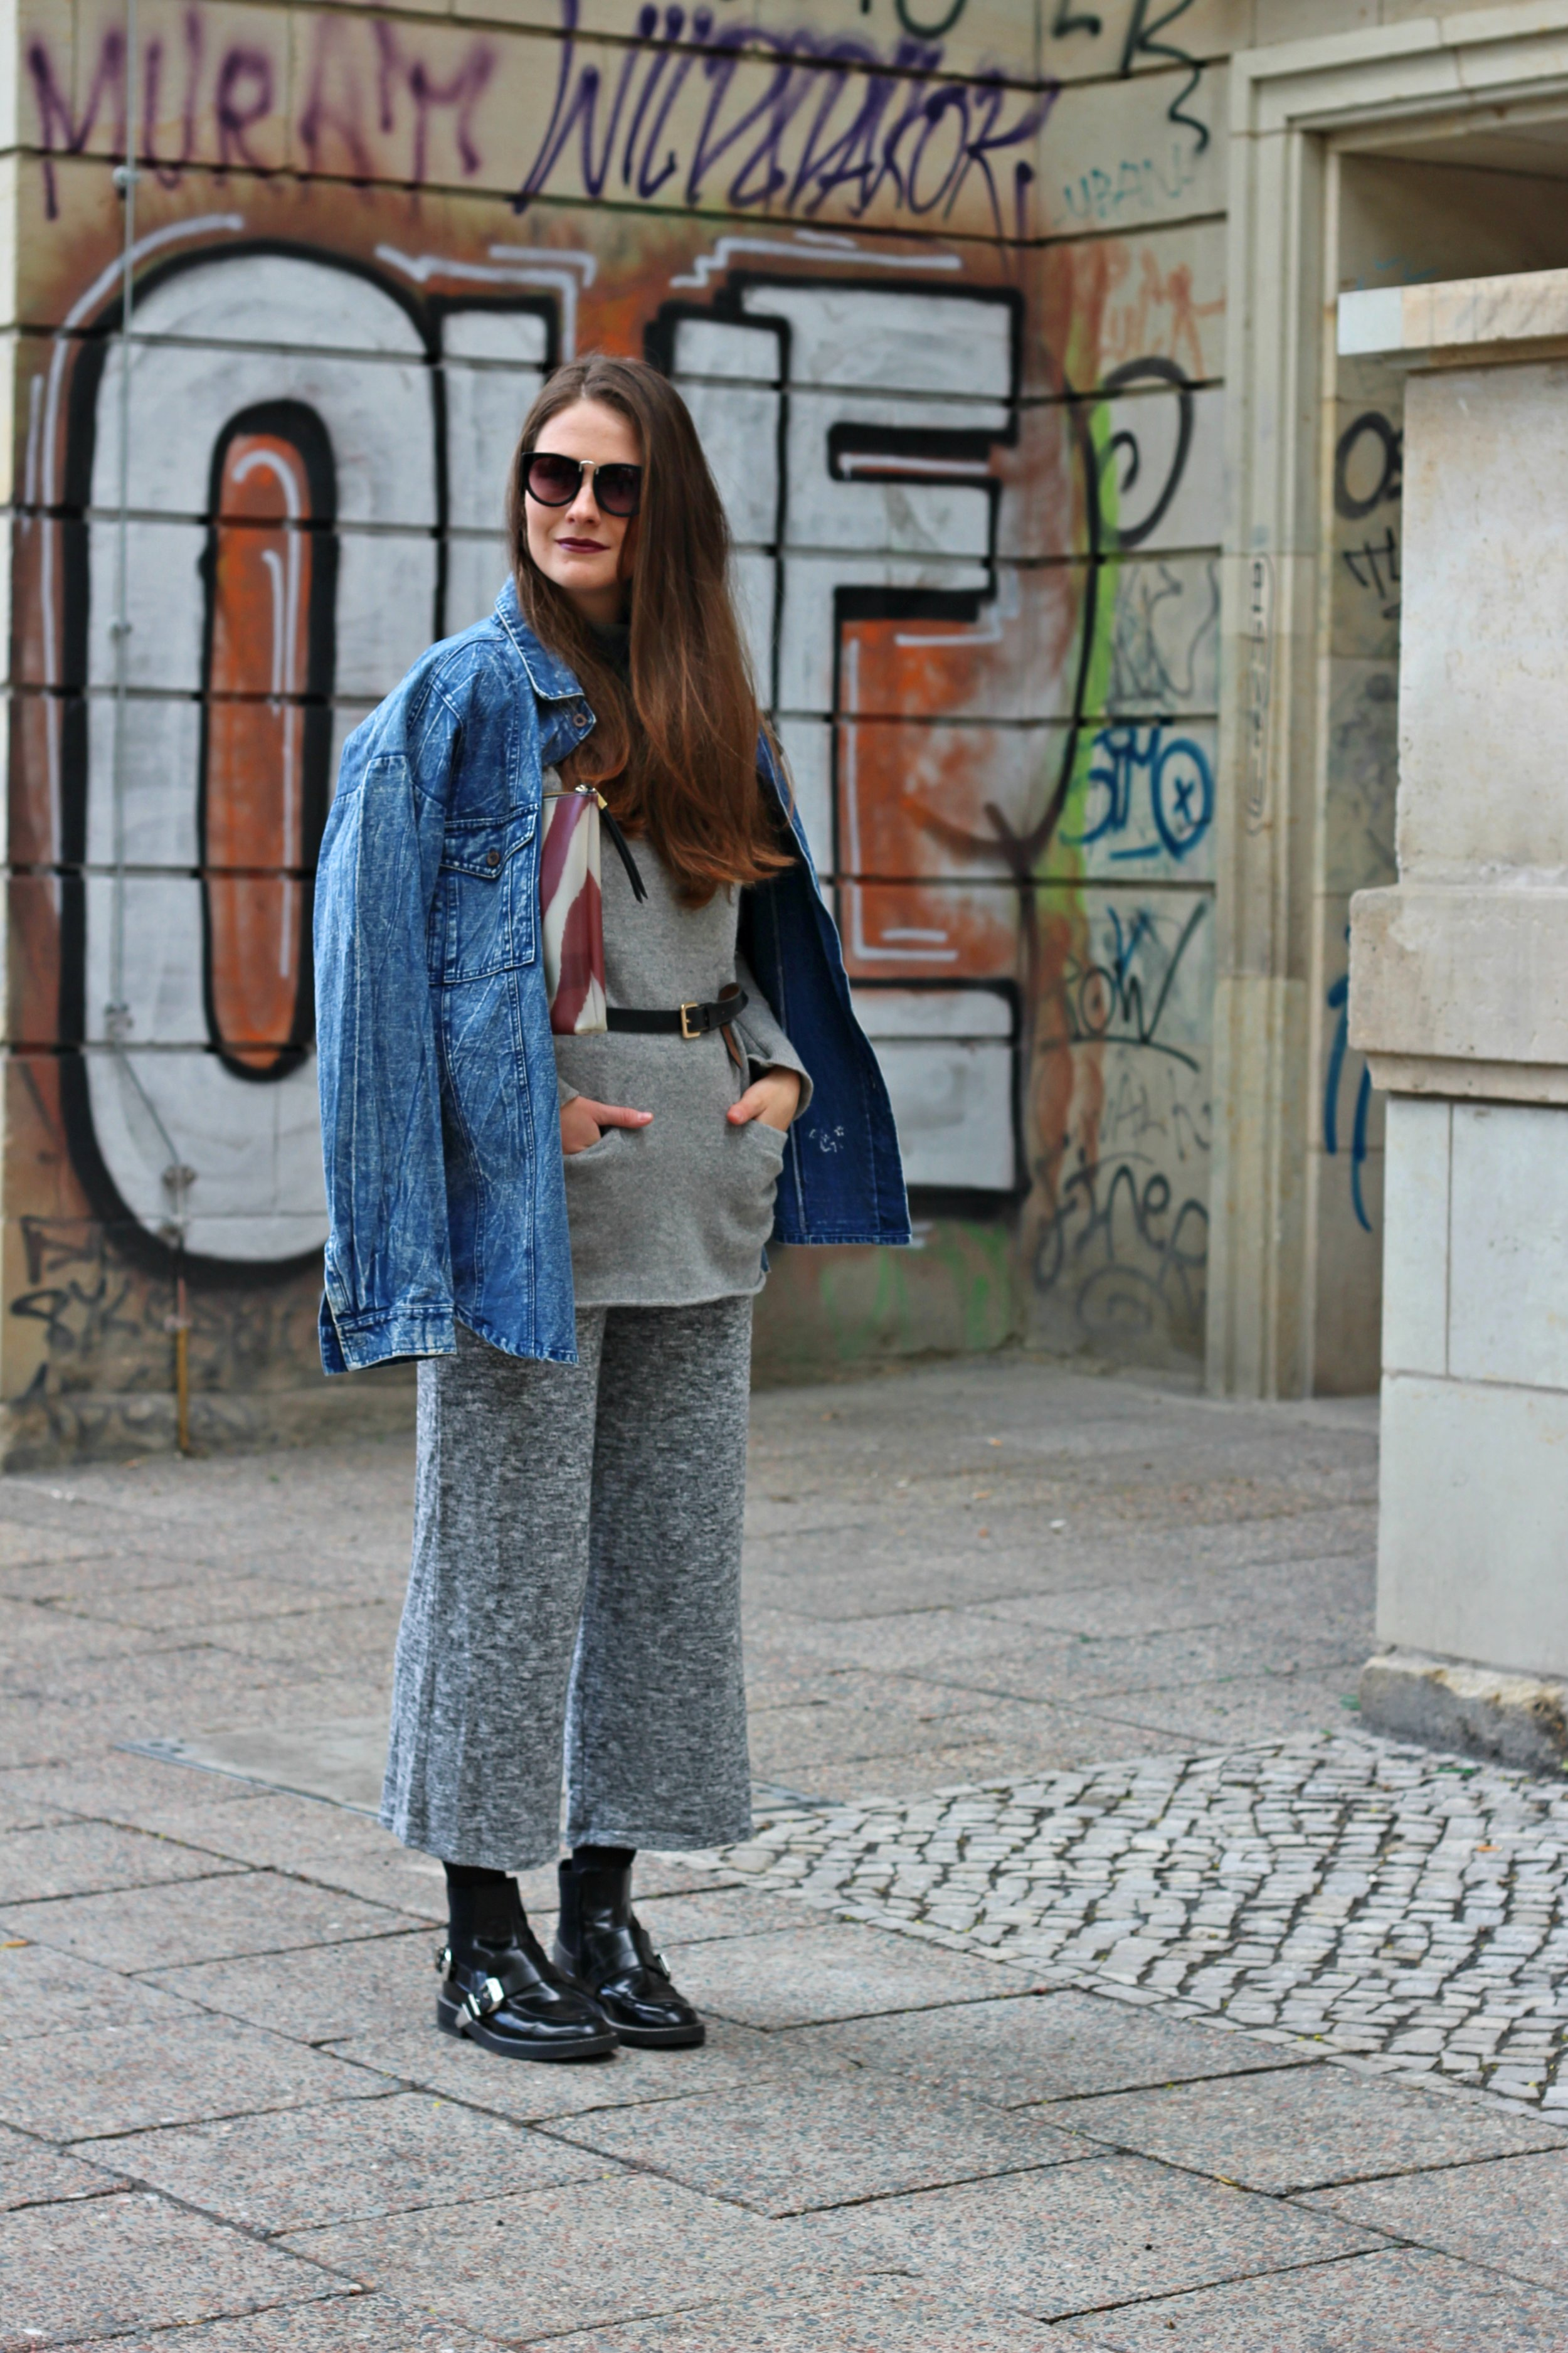 annaporter-denim-jacket-culottes-chelsea-boots-90's-outfit-style-fashion-blogger-5